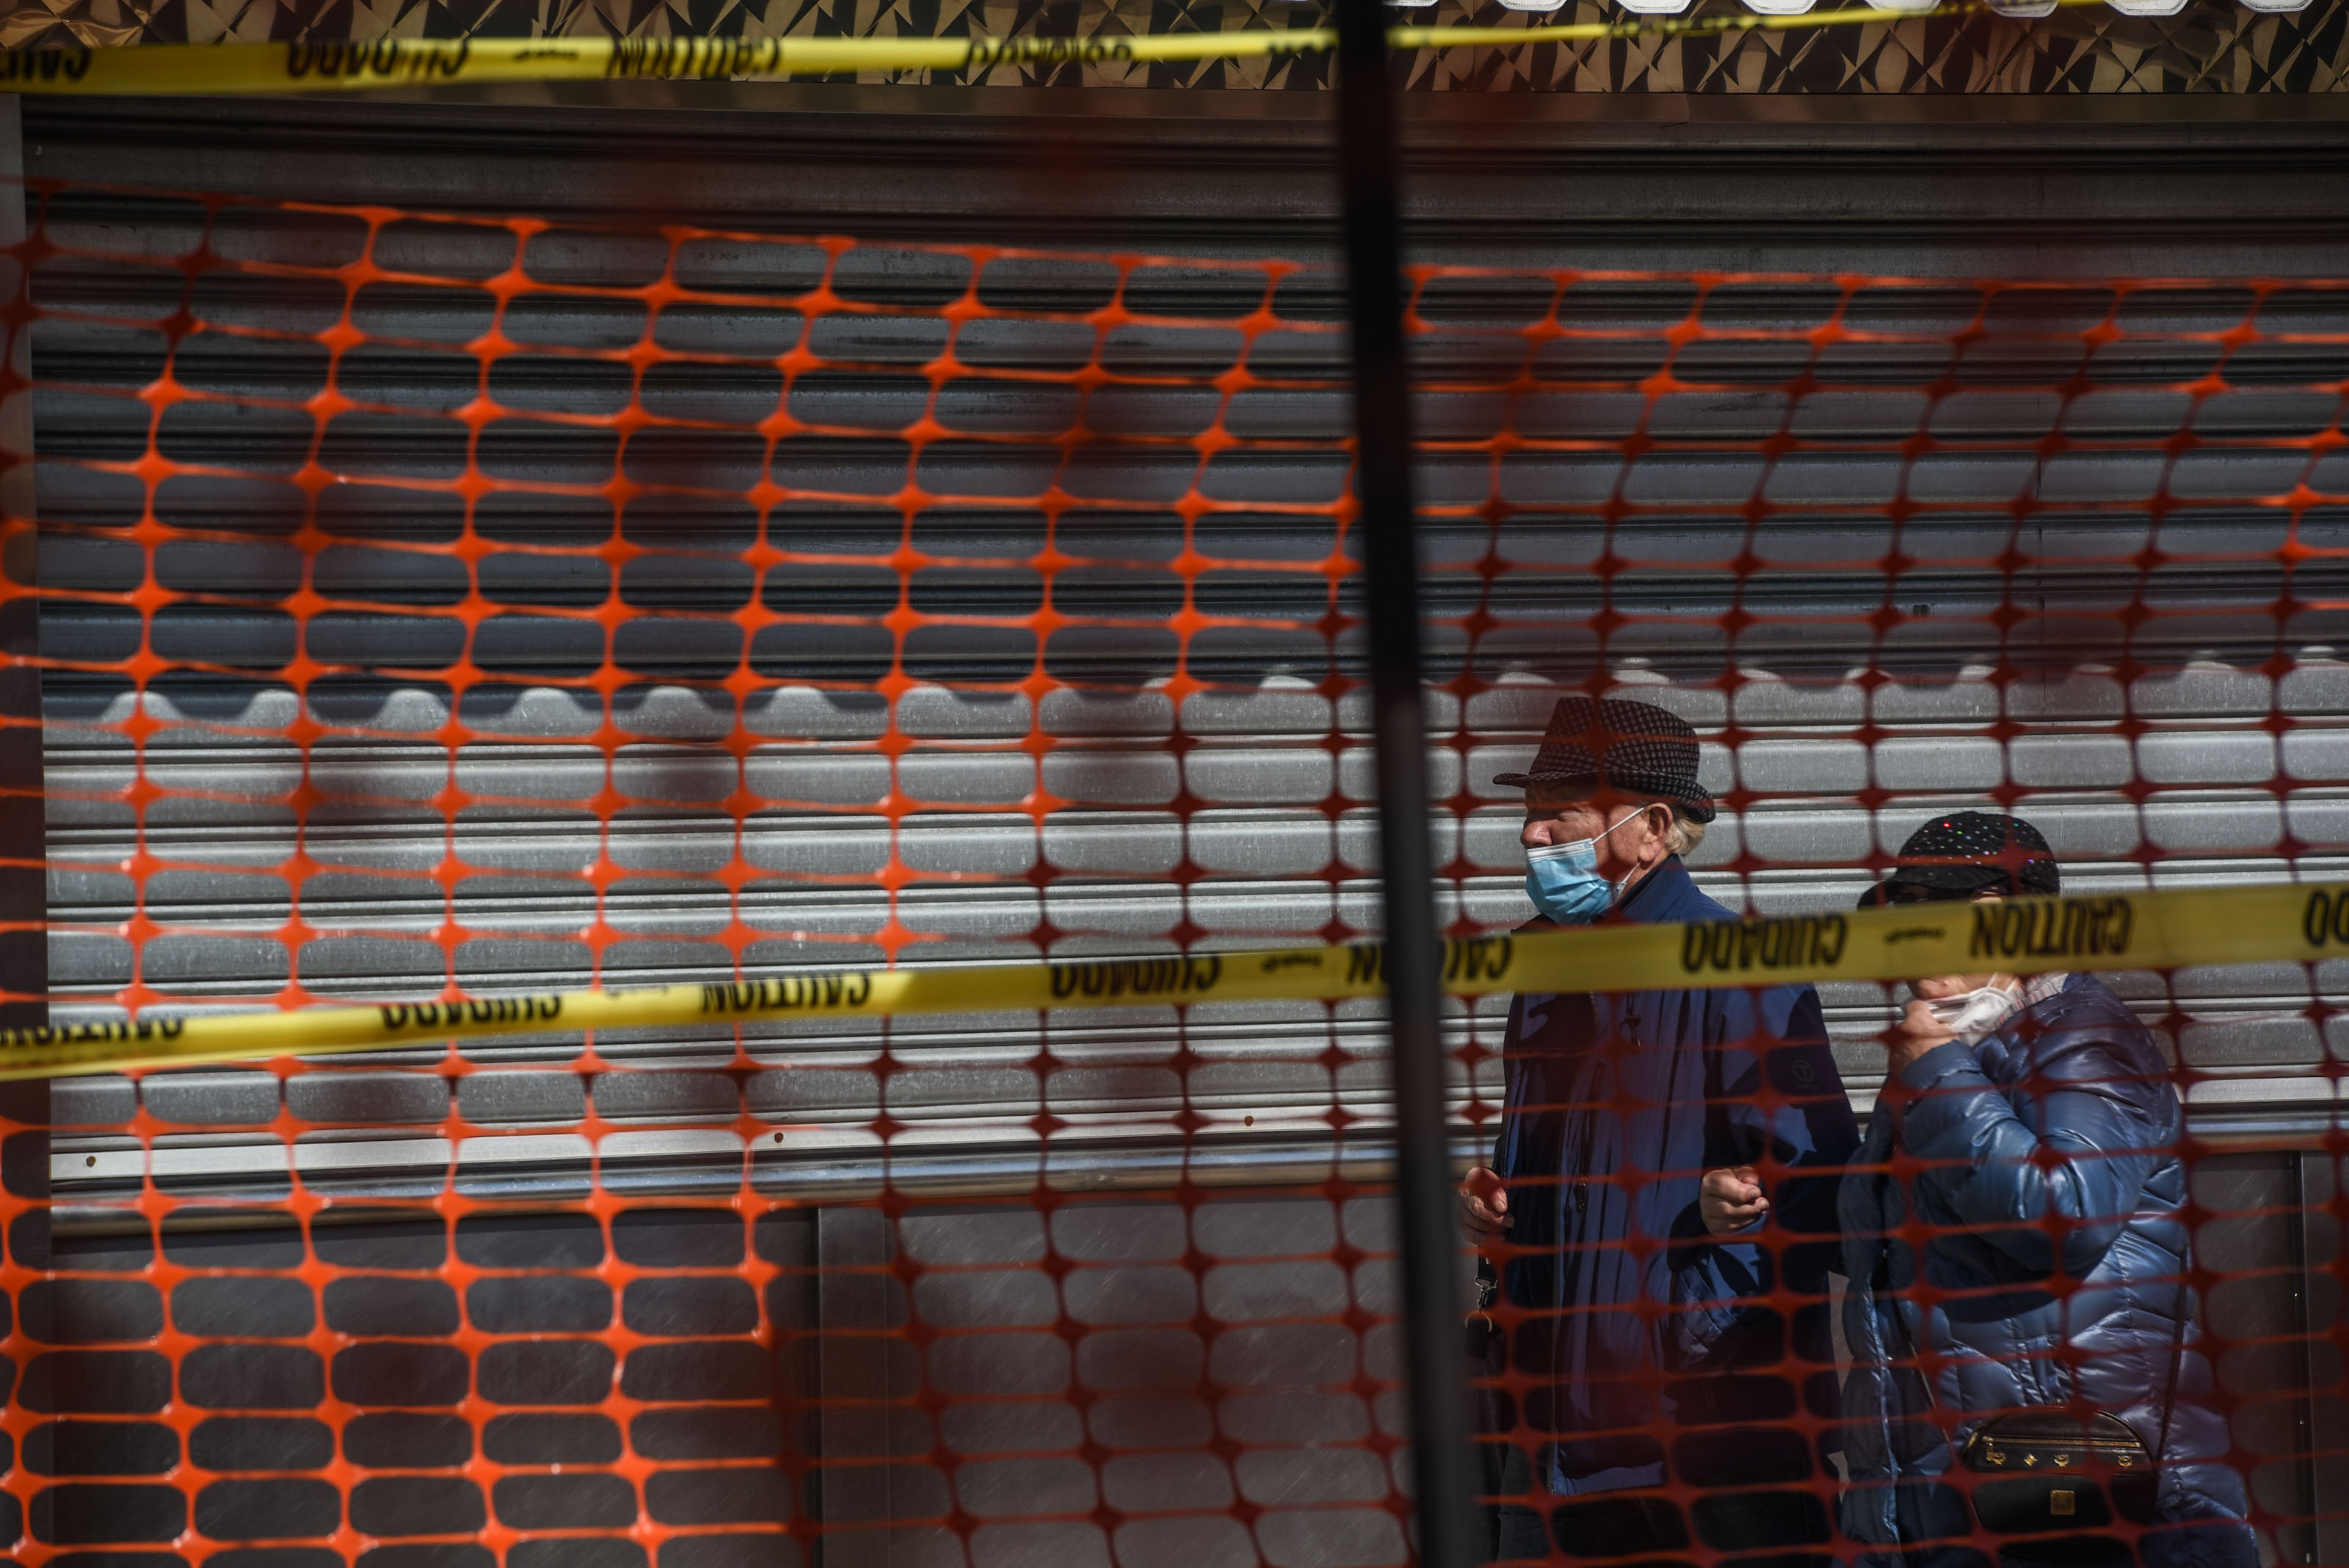 People walk by Nathan's Famous restaurant in the Coney Island neighborhood of Brooklyn, New York, on May 13.